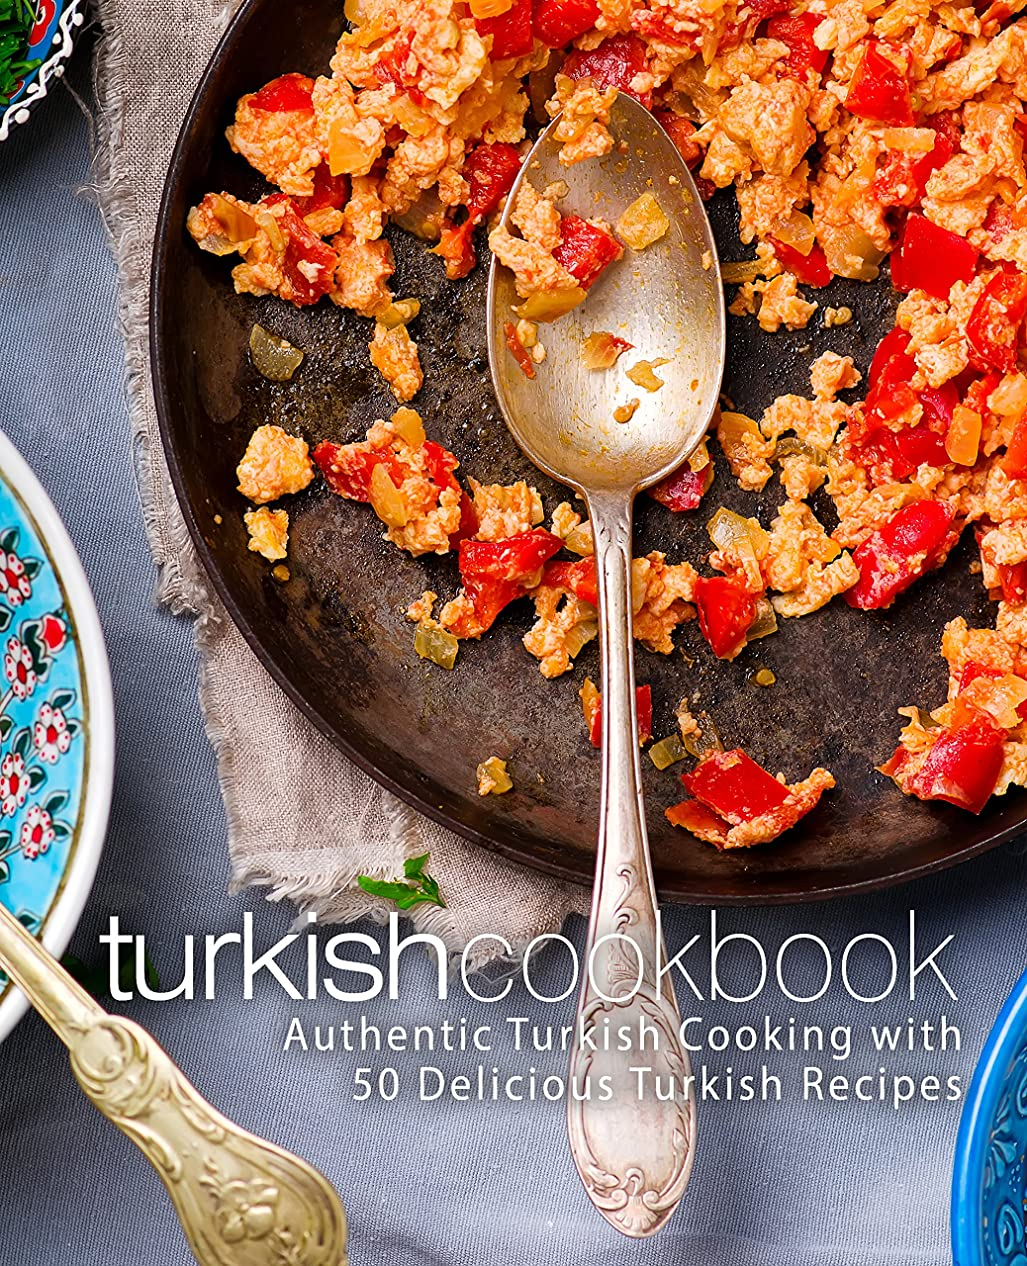 リダクター合併症報いるTurkish Cookbook: Authentic Turkish Cooking with 50 Delicious Turkish Recipes (English Edition)